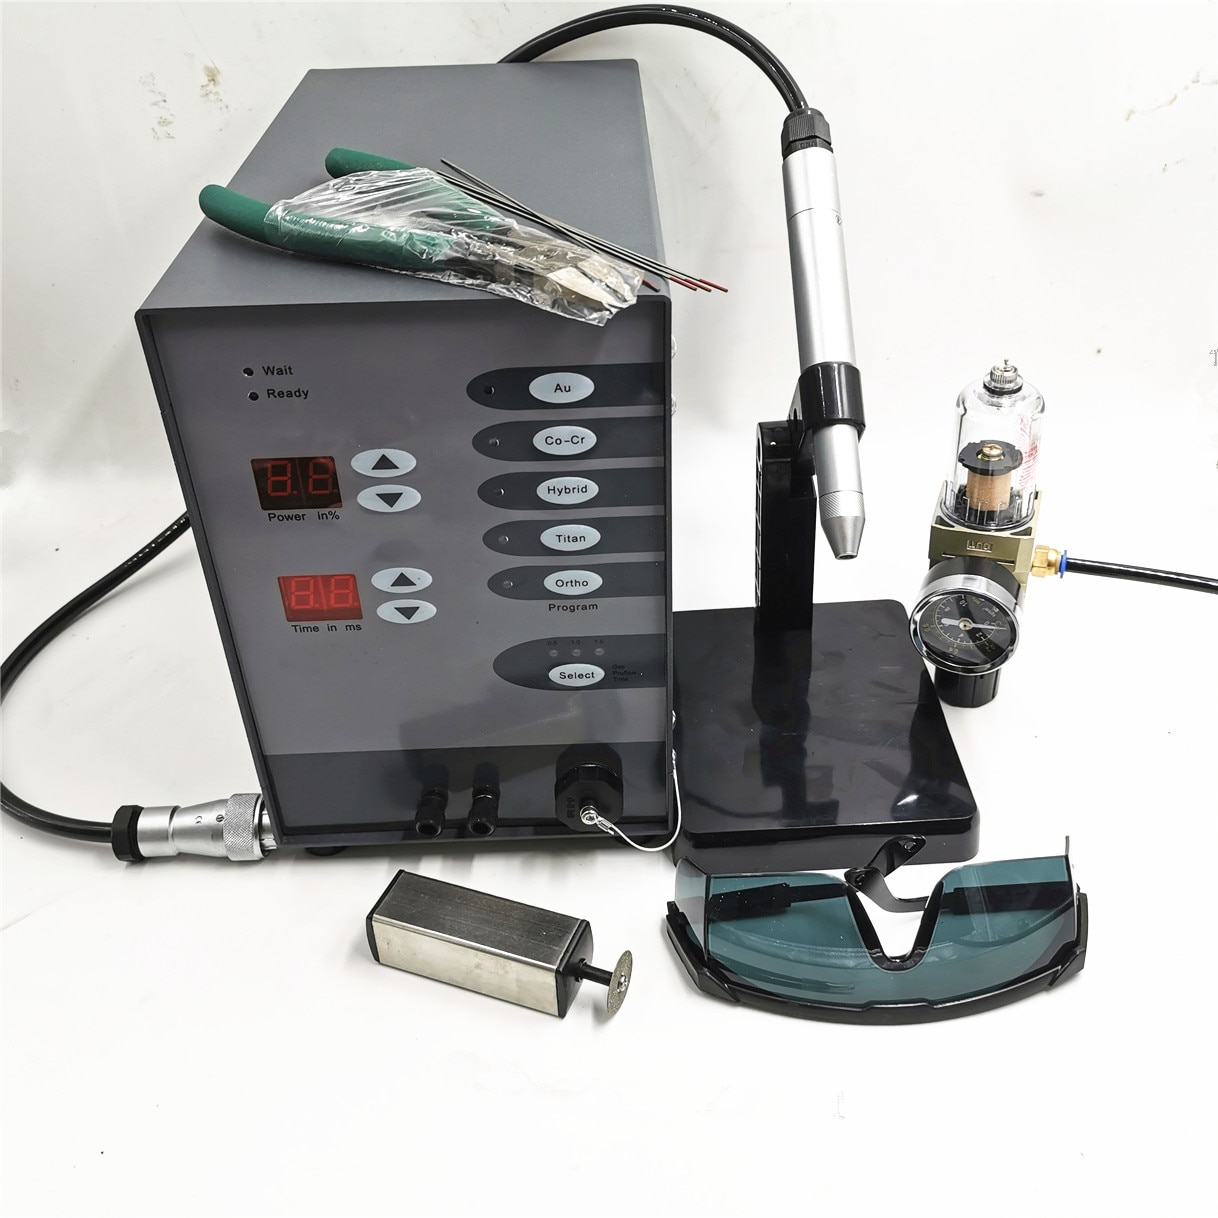 Stainless Steel Spot Welding Machine Laser Welding Automatic Numerical Control Pulse Argon Arc Welder Jewelry Spot Welder steel pulse steel pulse victims